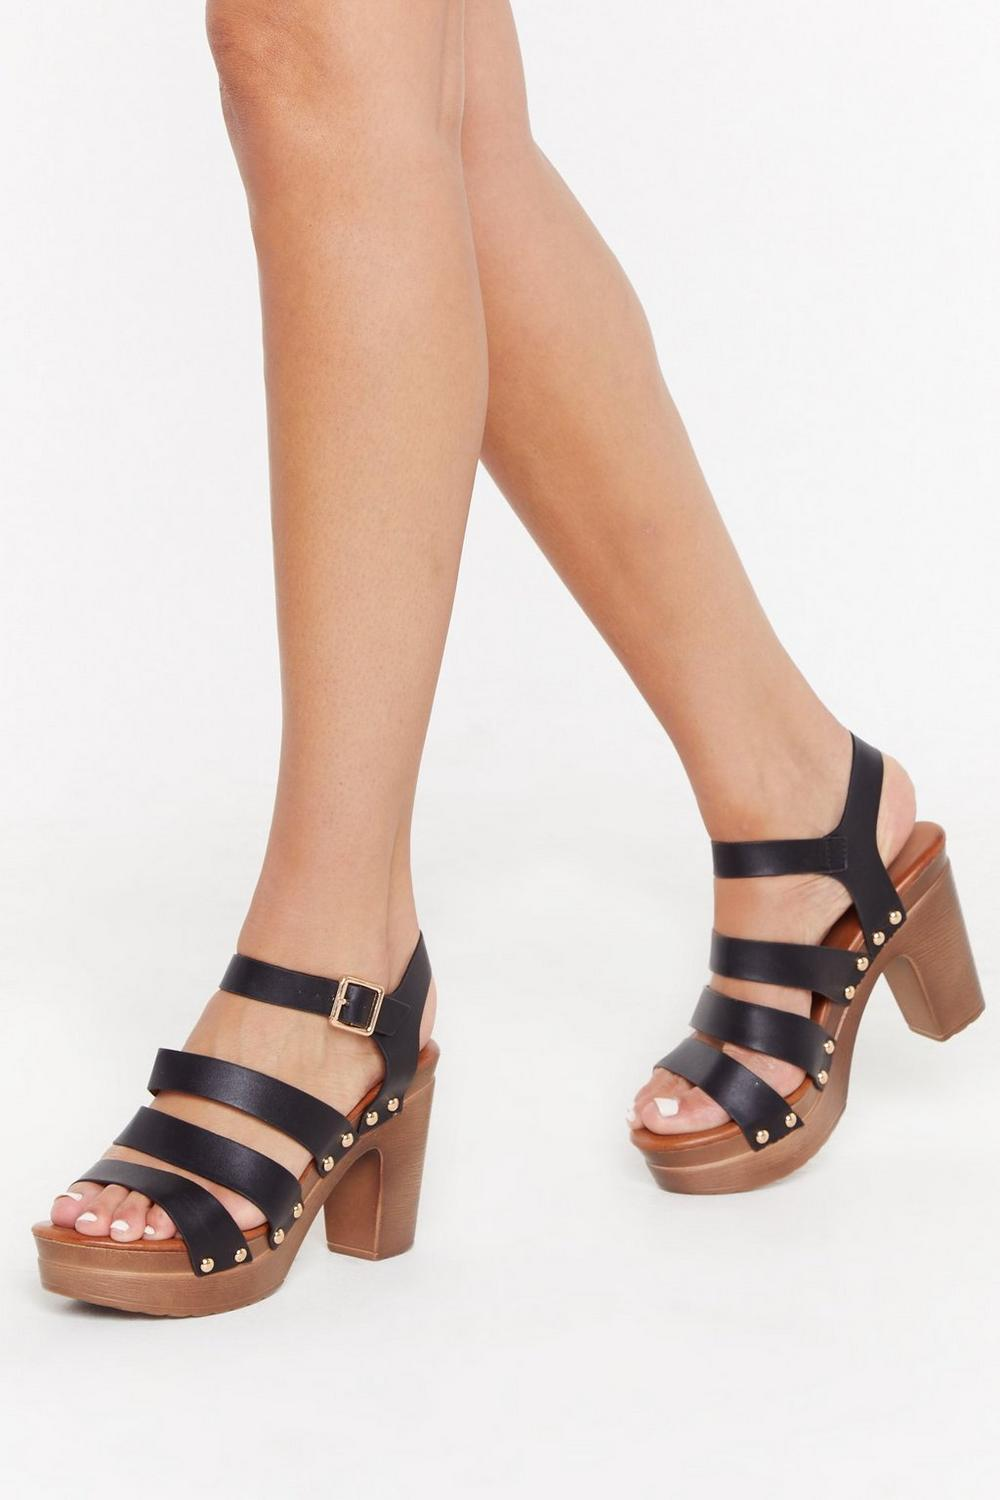 Never Had It So Wood Strappy Sandal by Nasty Gal